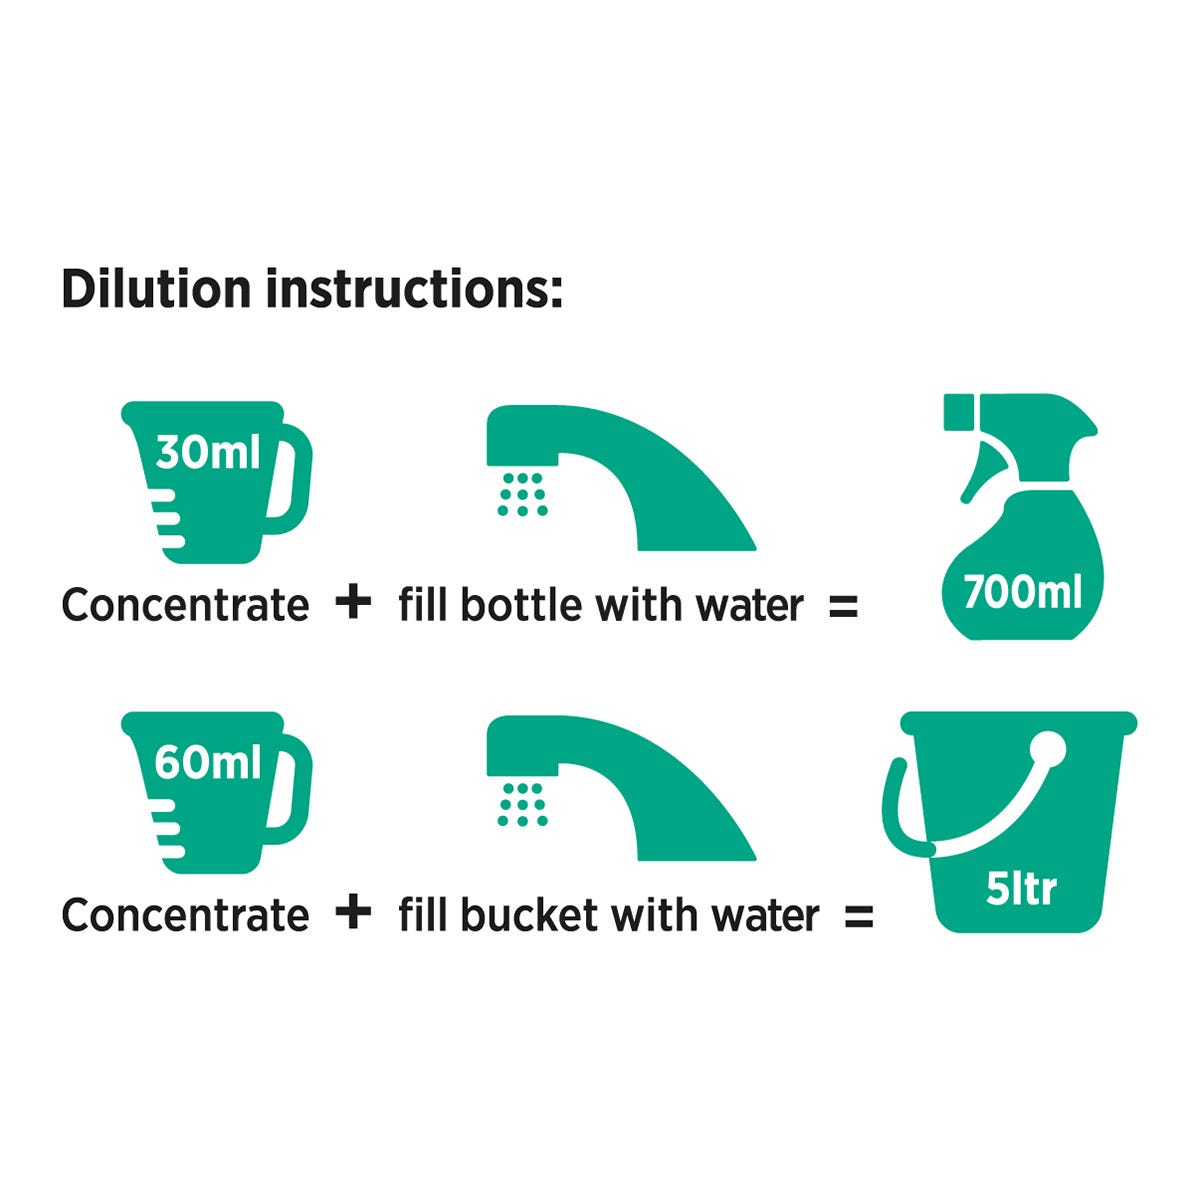 Dilution instructions